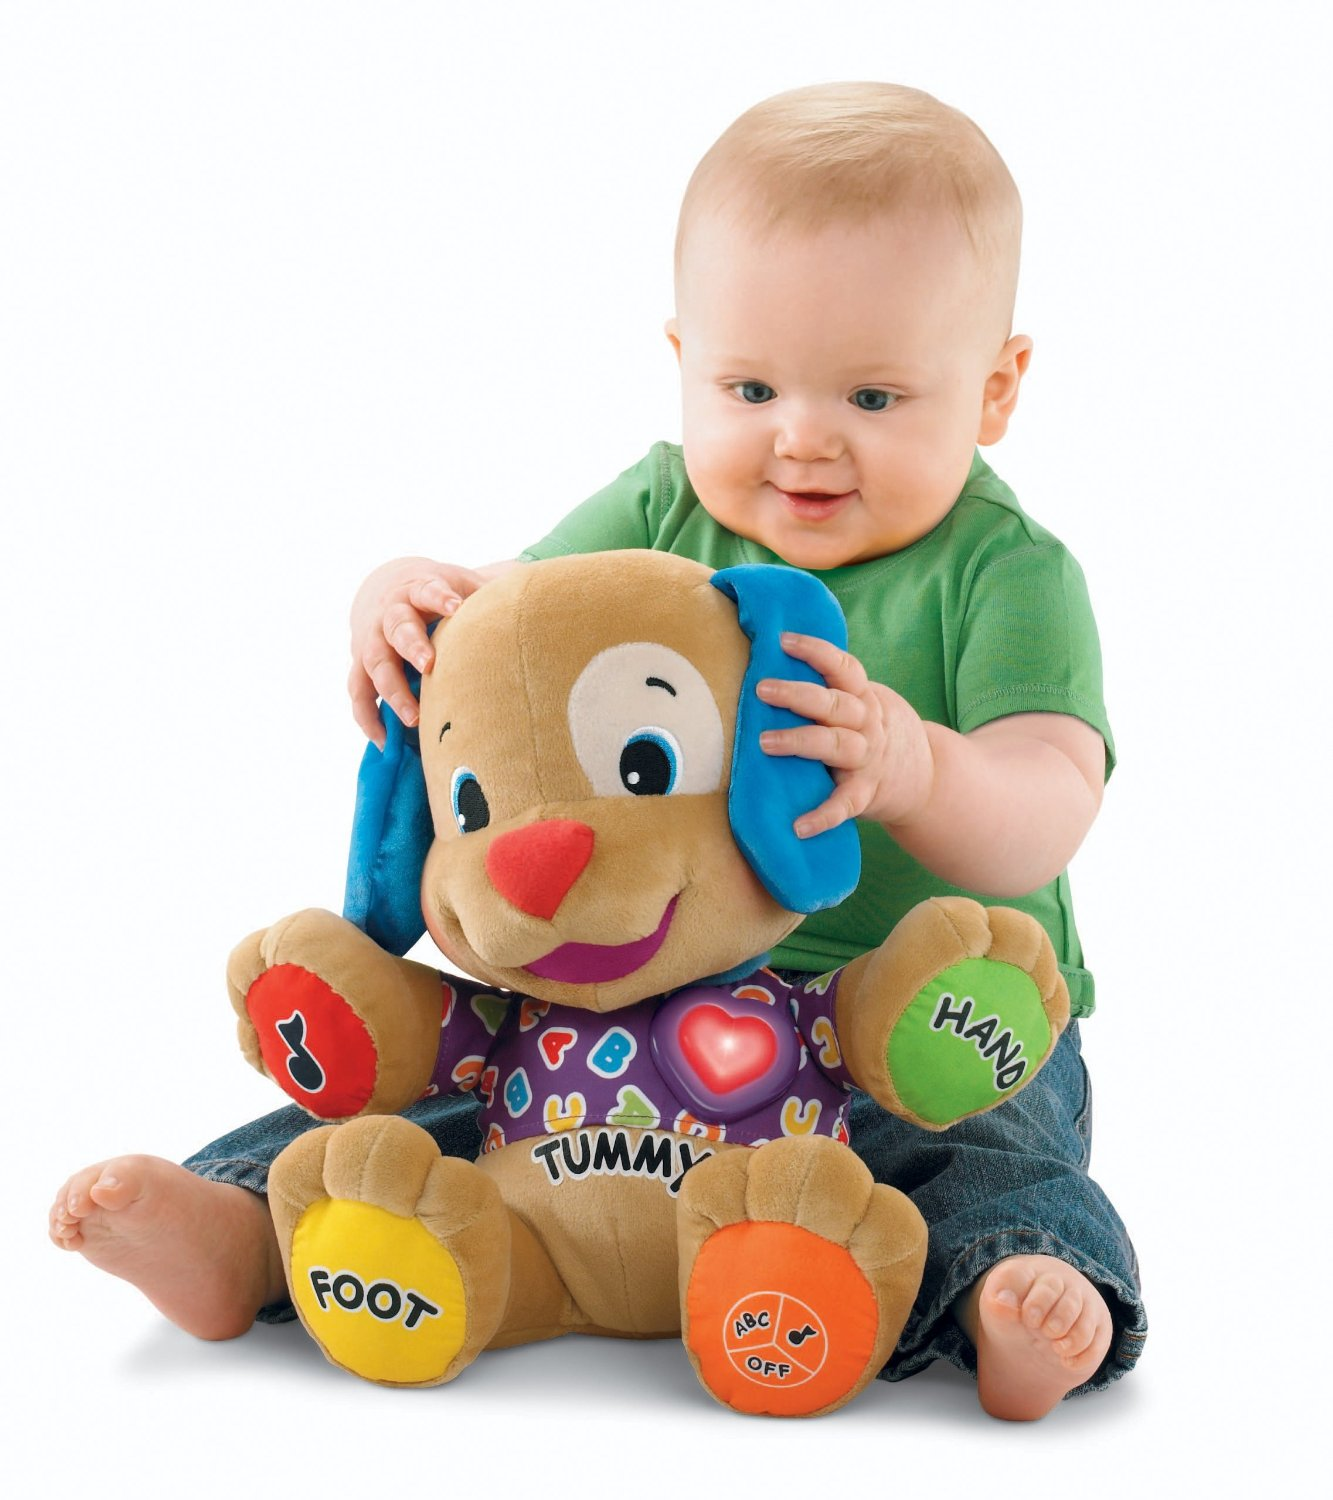 Best Baby Toys For 8 Months Old : Best gift ideas for six month old baby boys and girls